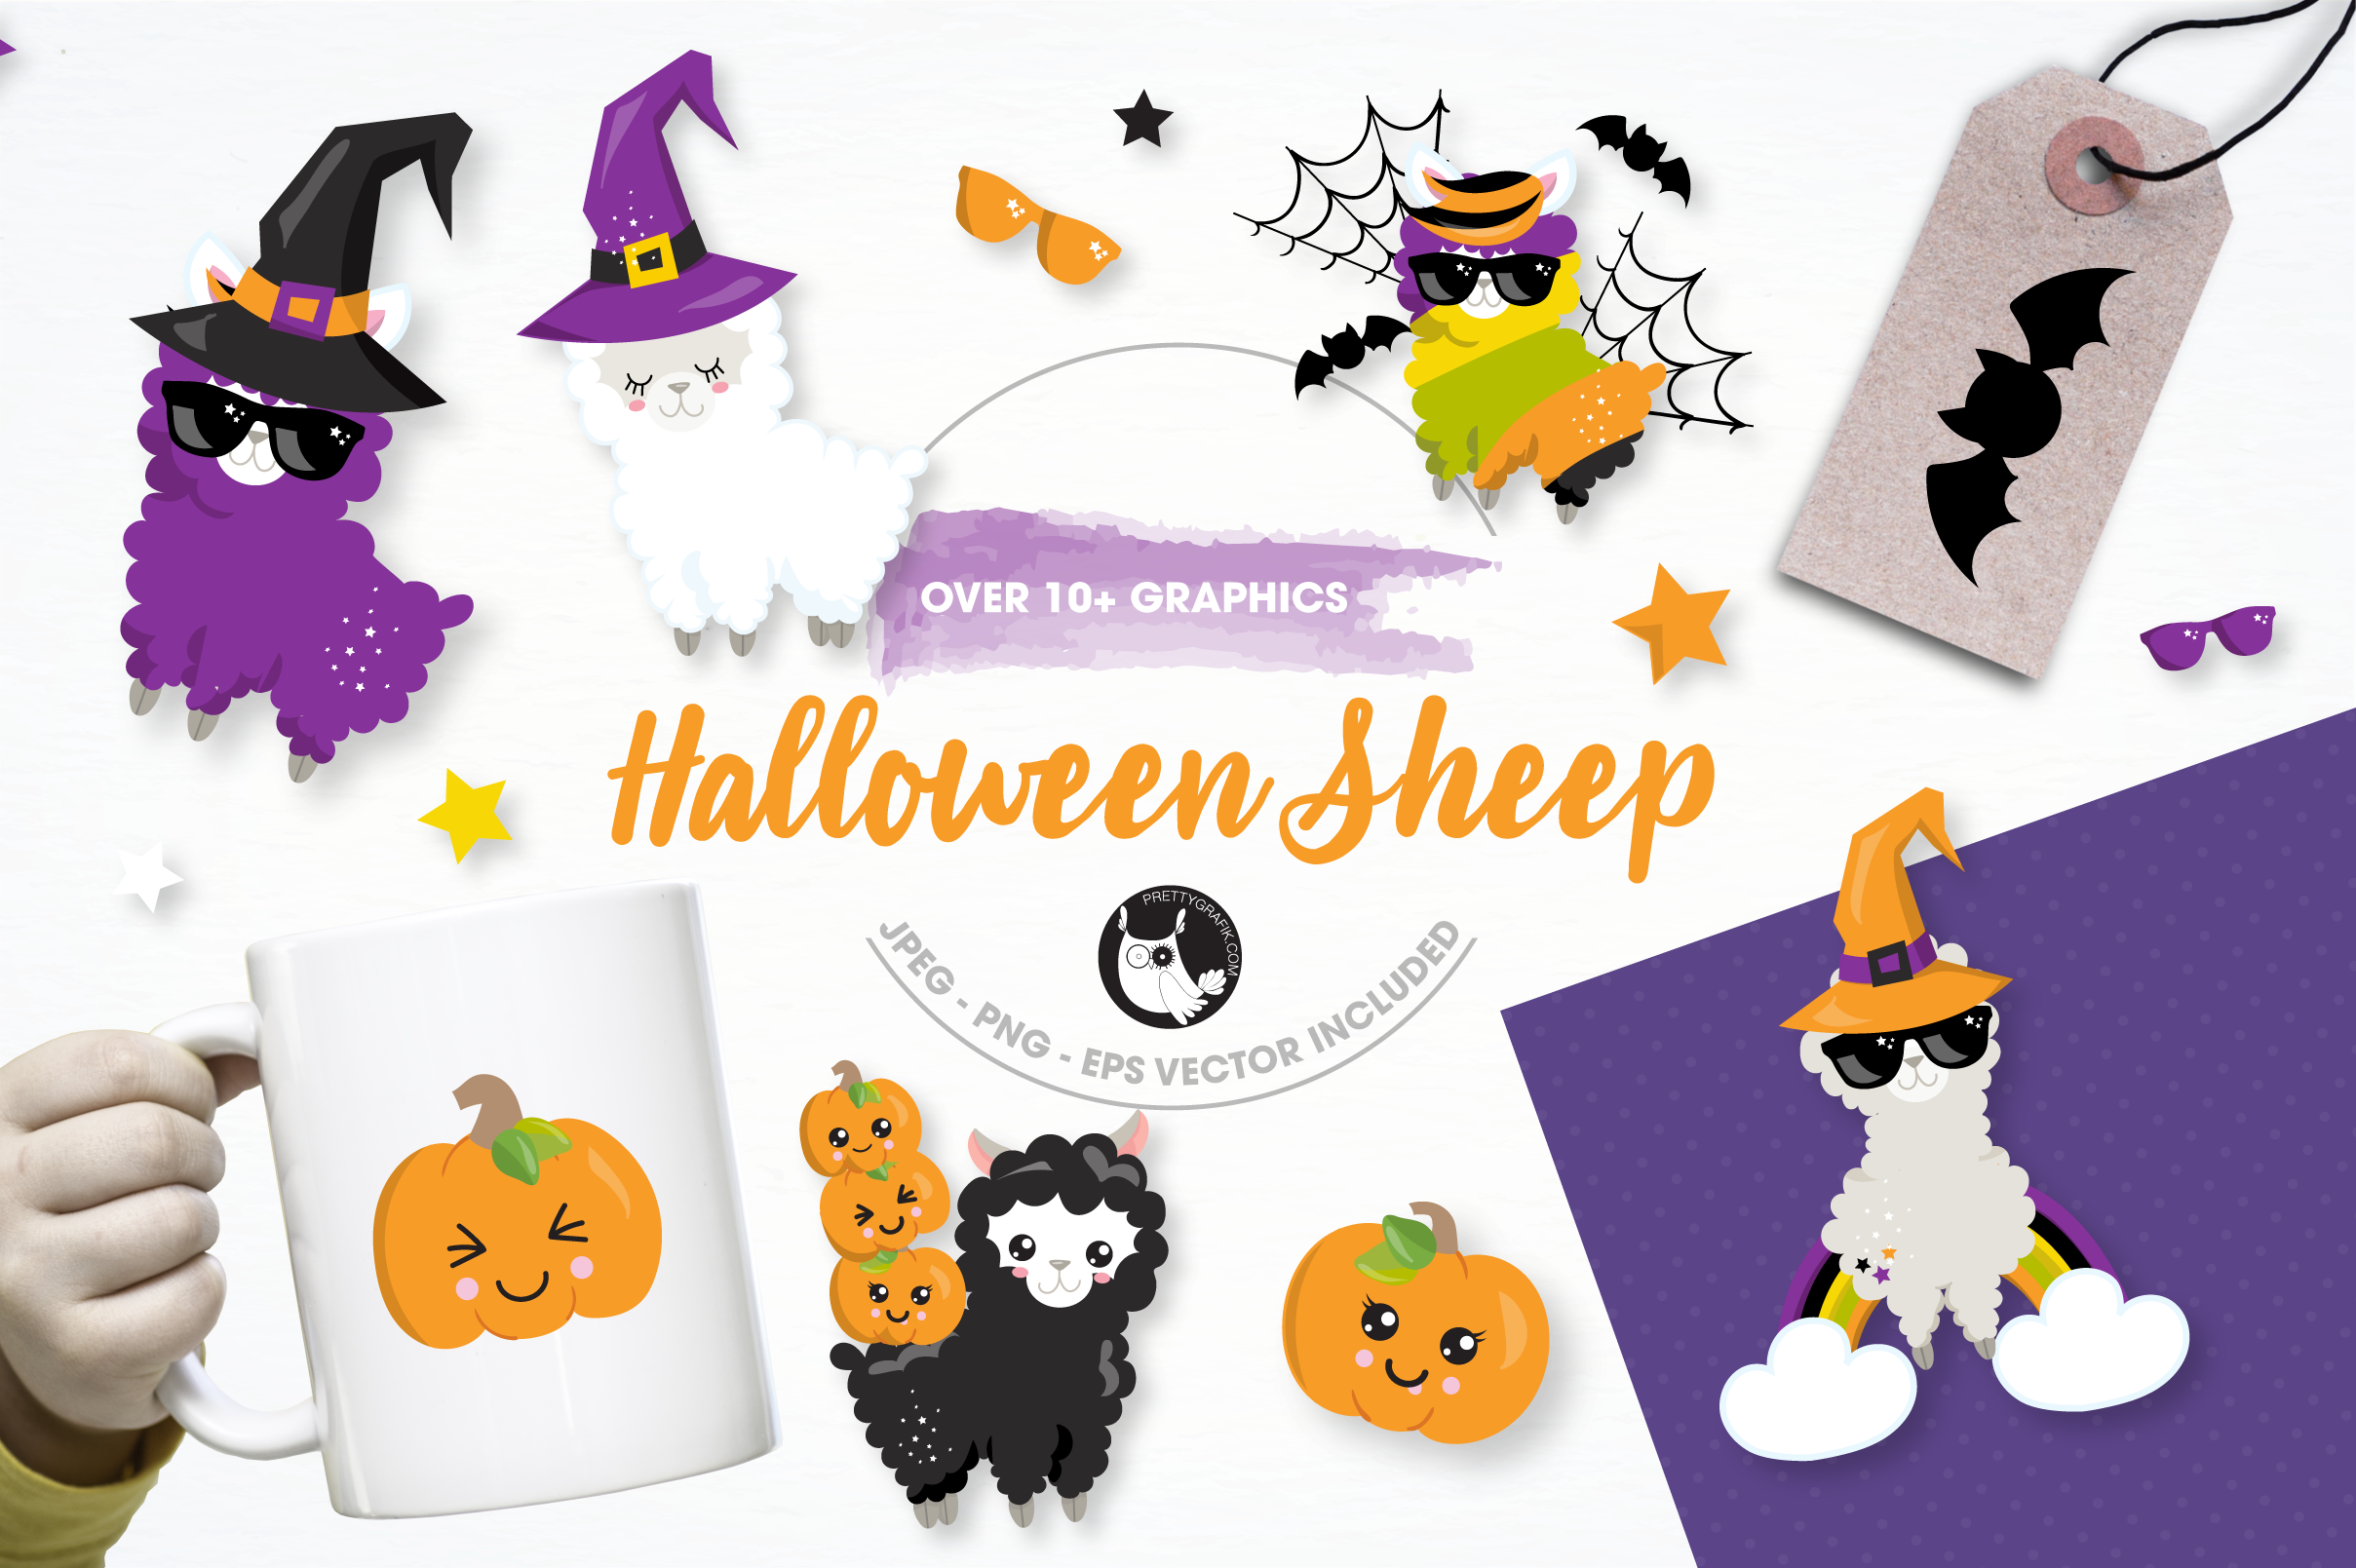 Halloween sheep graphics and illustrations example image 1